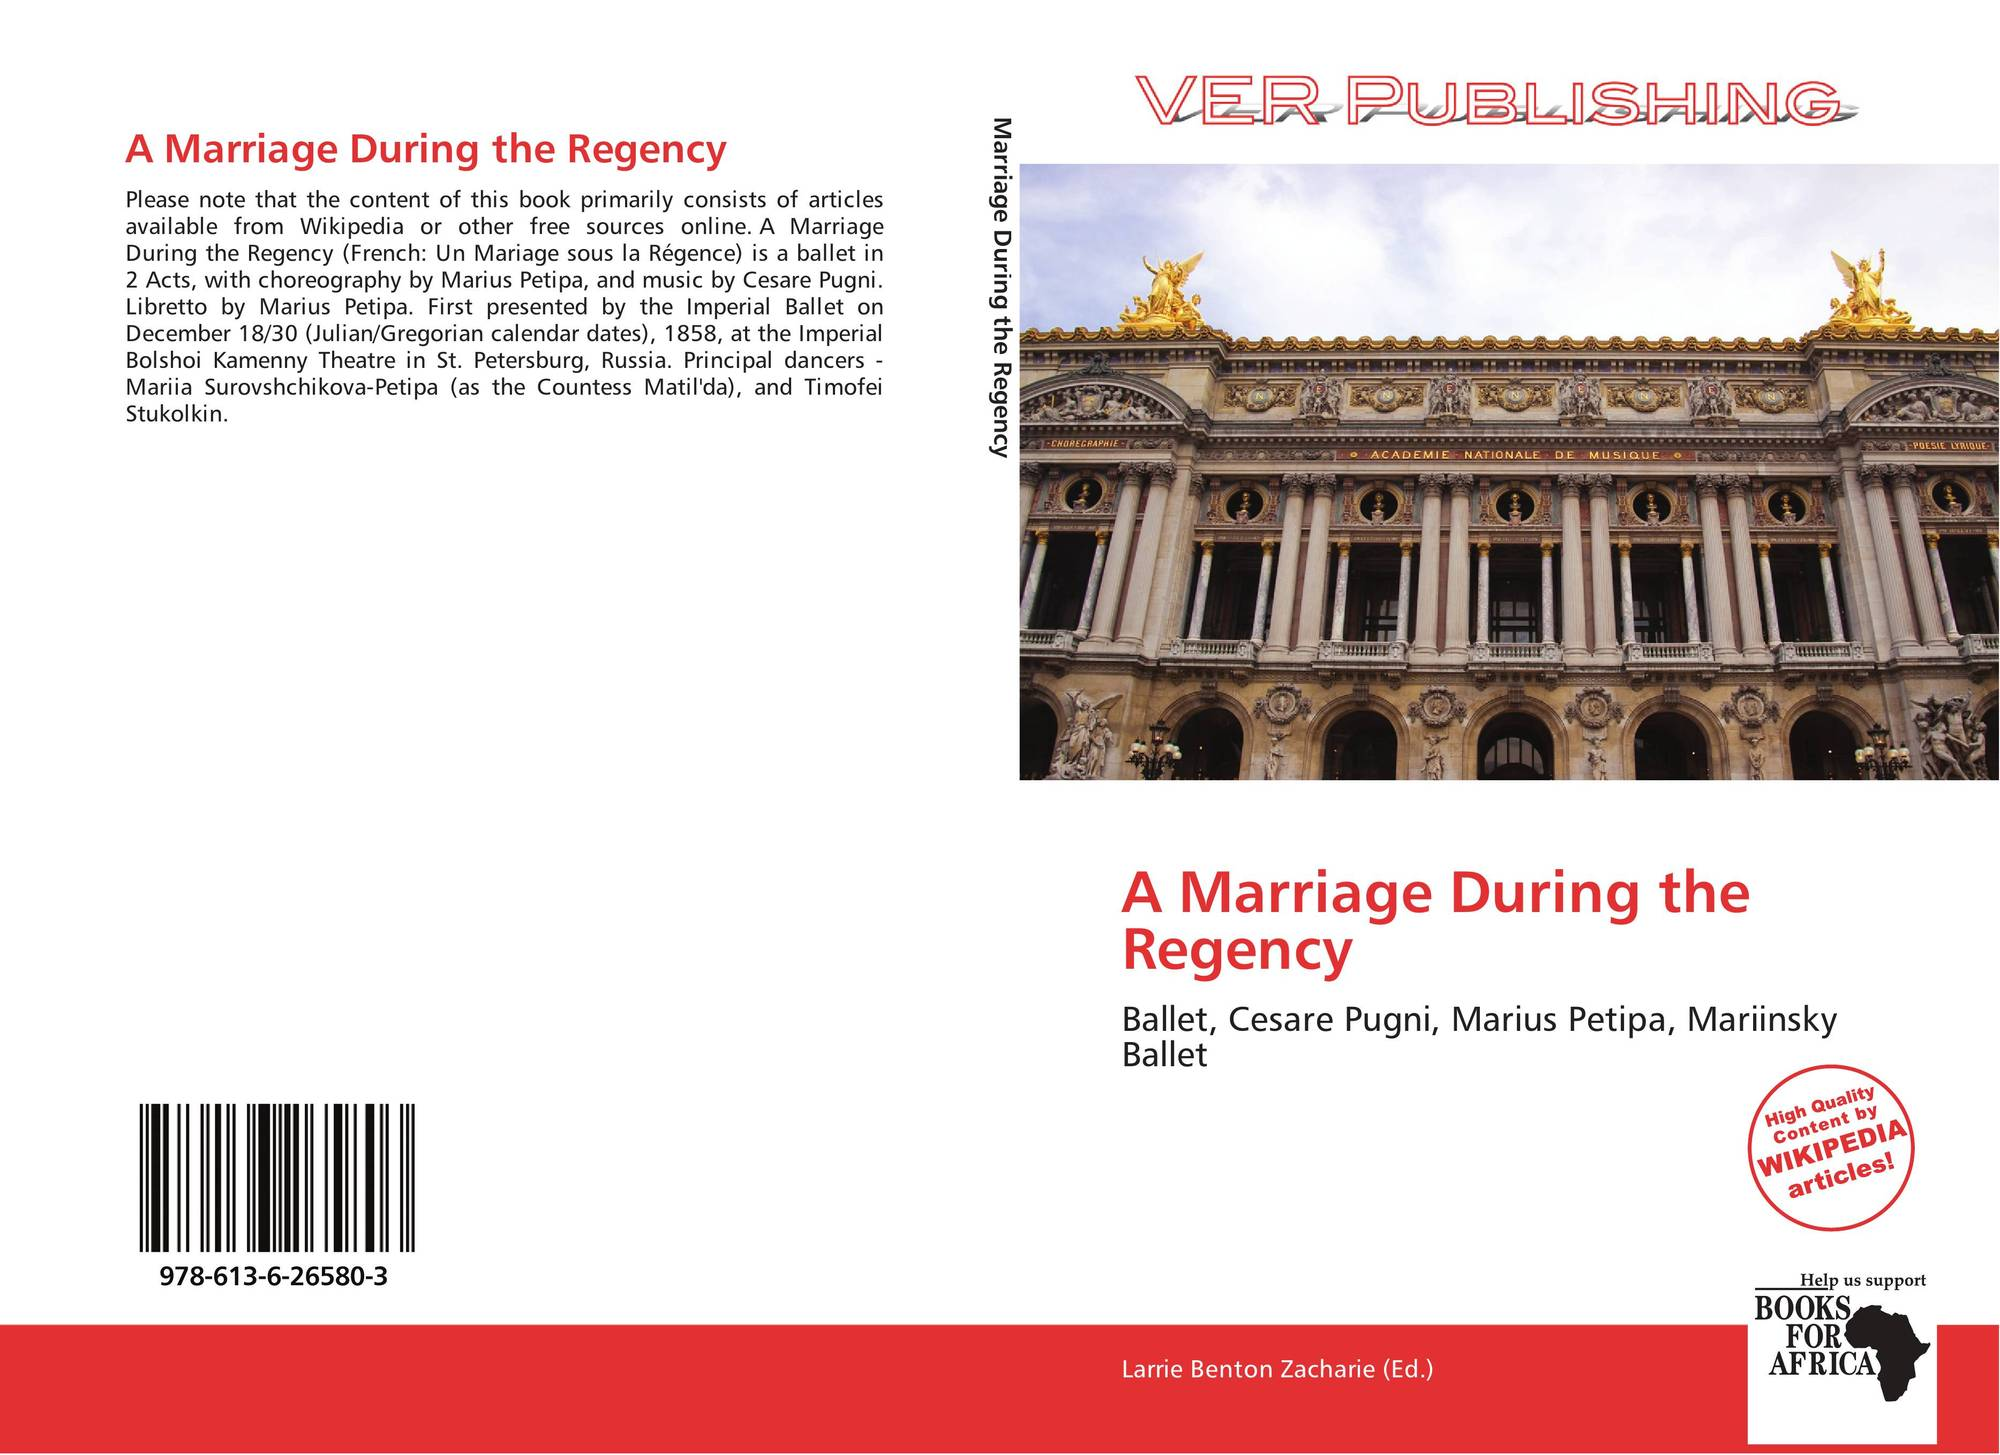 a marriage during the regency 978 613 6 26580 3 613626580x